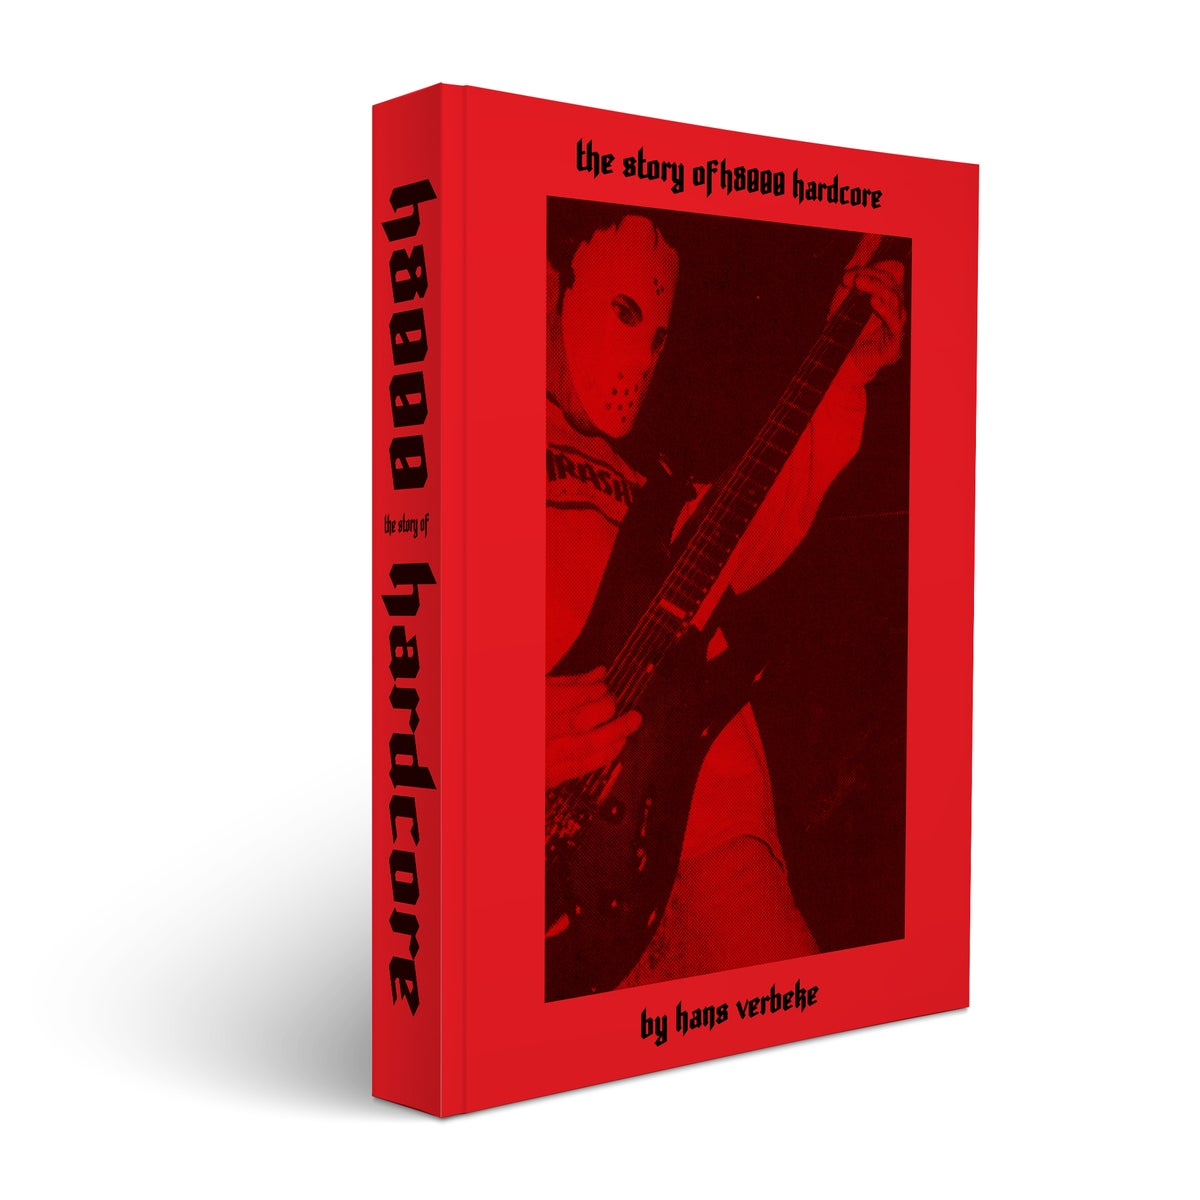 Image of H8000 book free shipping